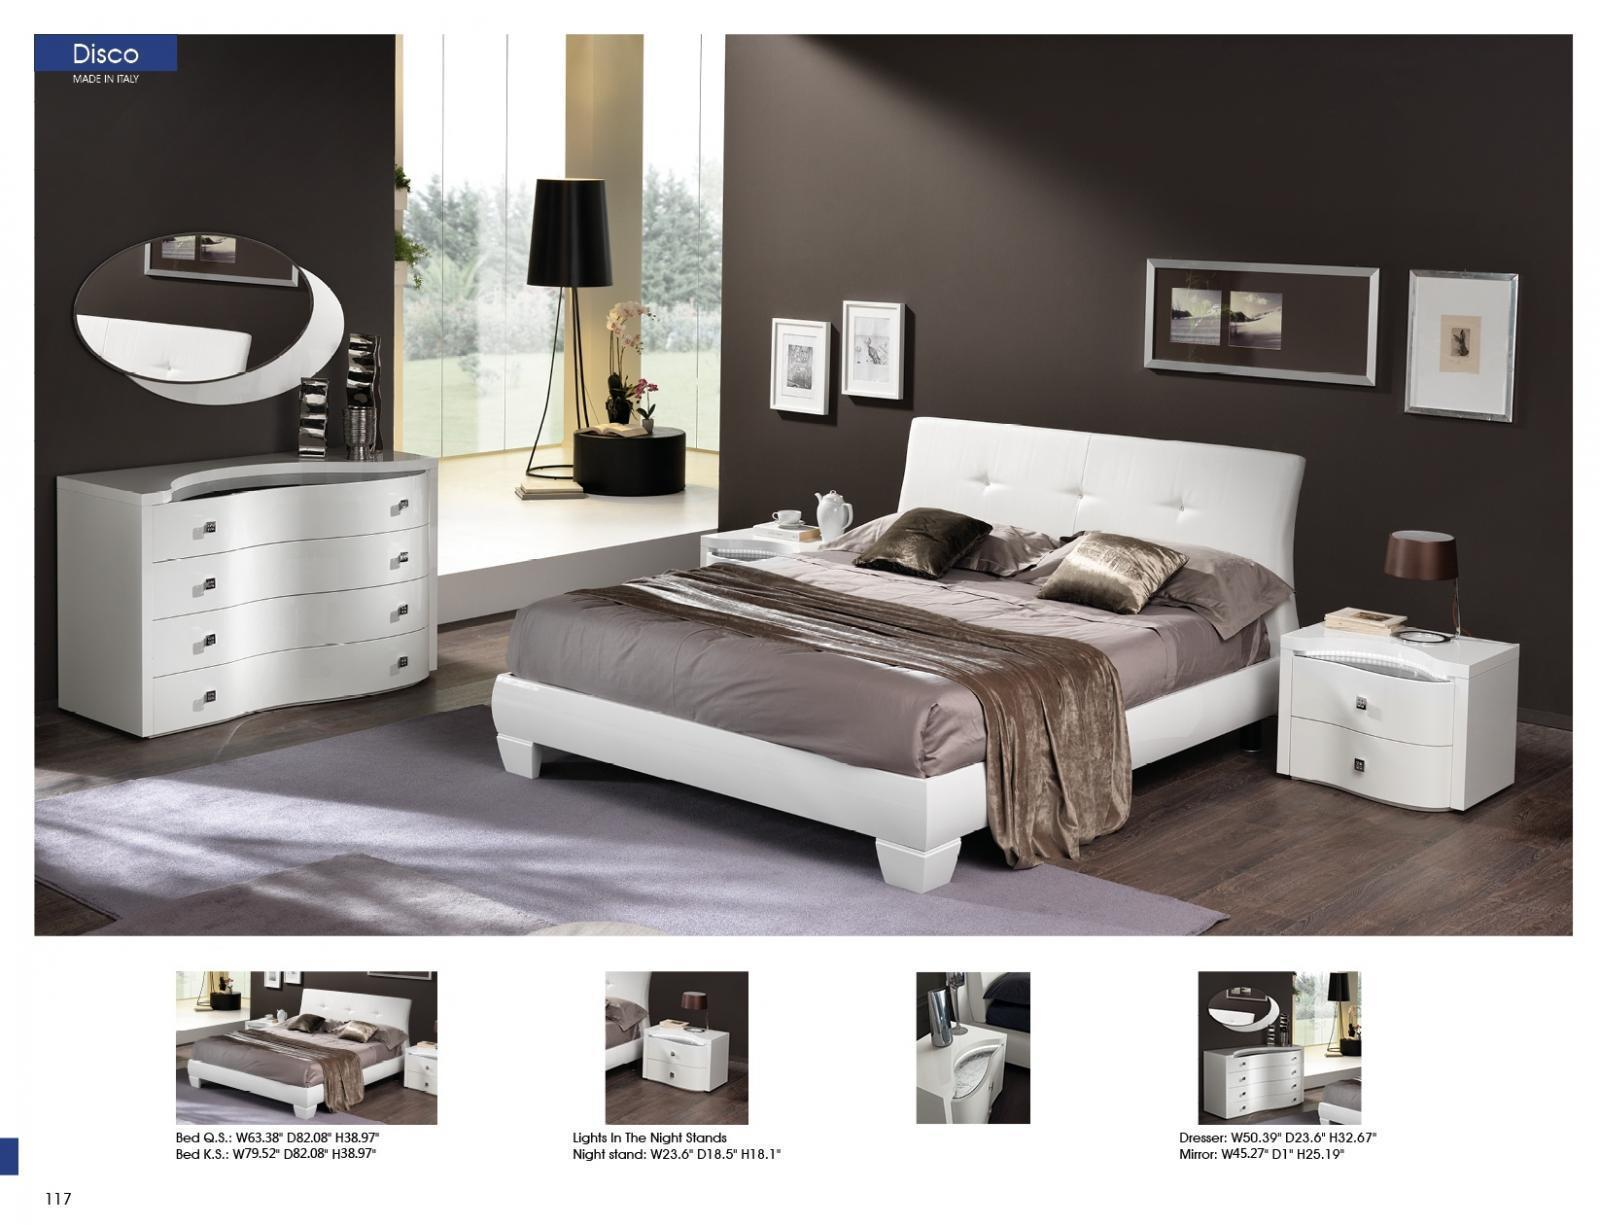 ESF Disco Queen Size Bedroom Set 5pcs White Contemporary Made in Italy